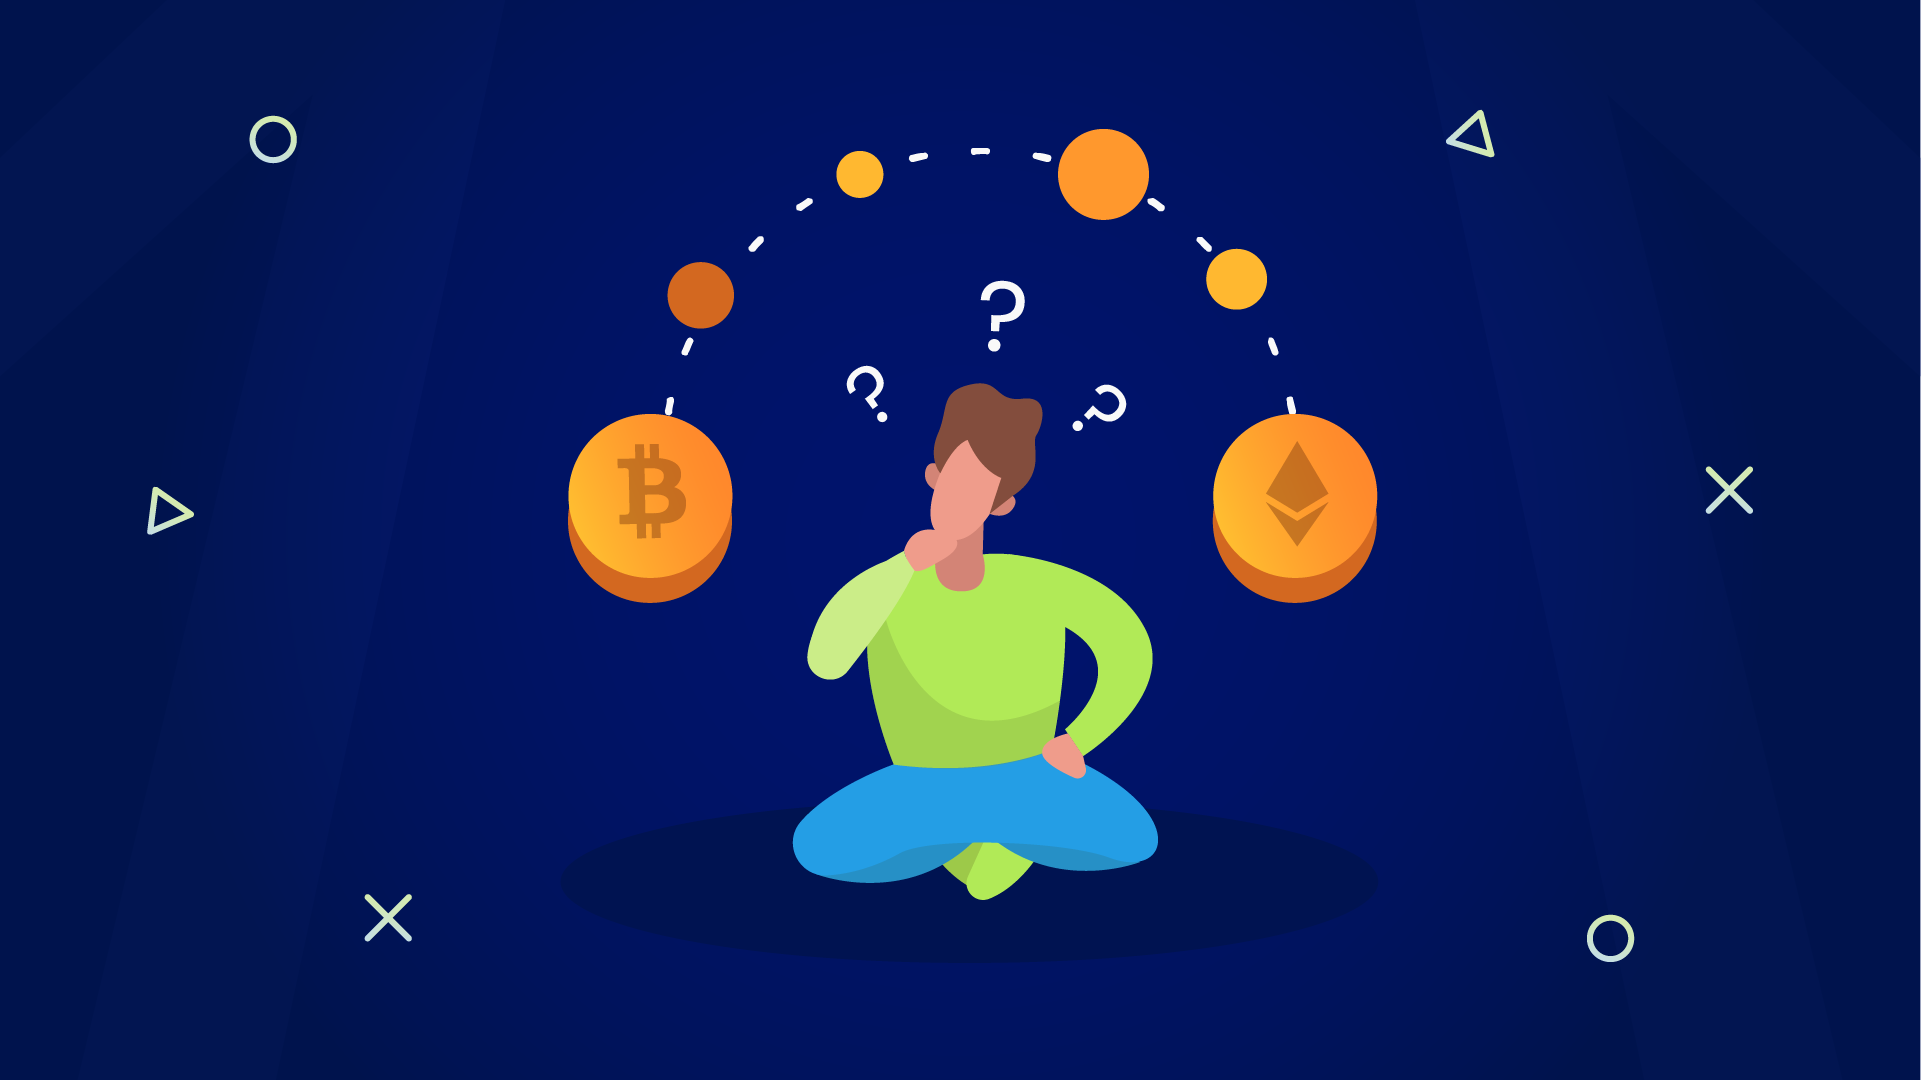 Why mix coins?